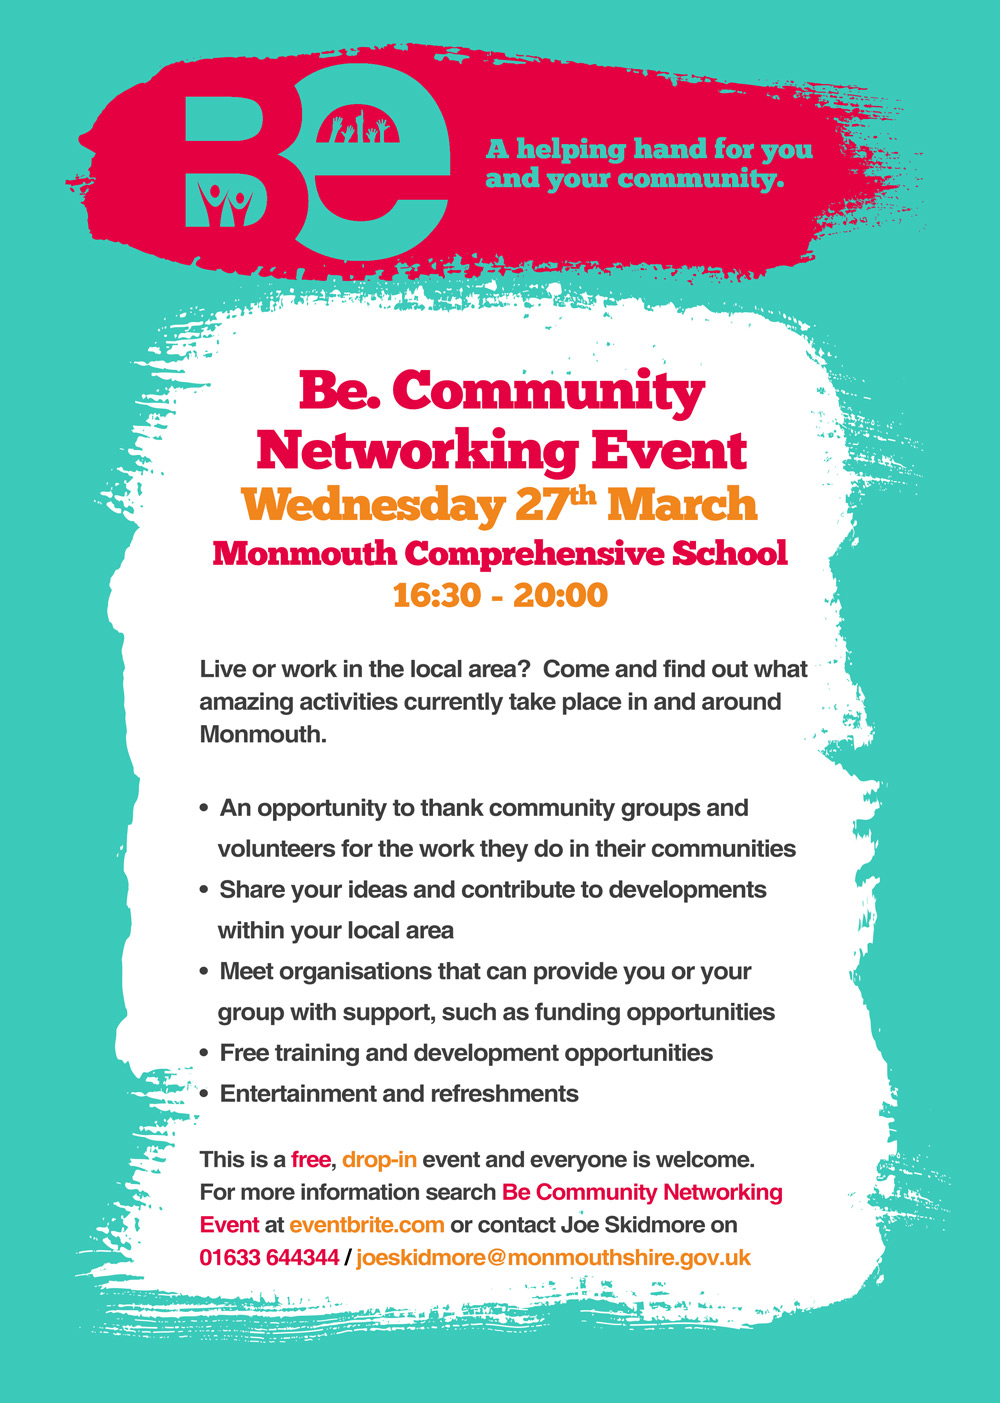 Event To Offer Support To Monmouth Area Volunteers And Community